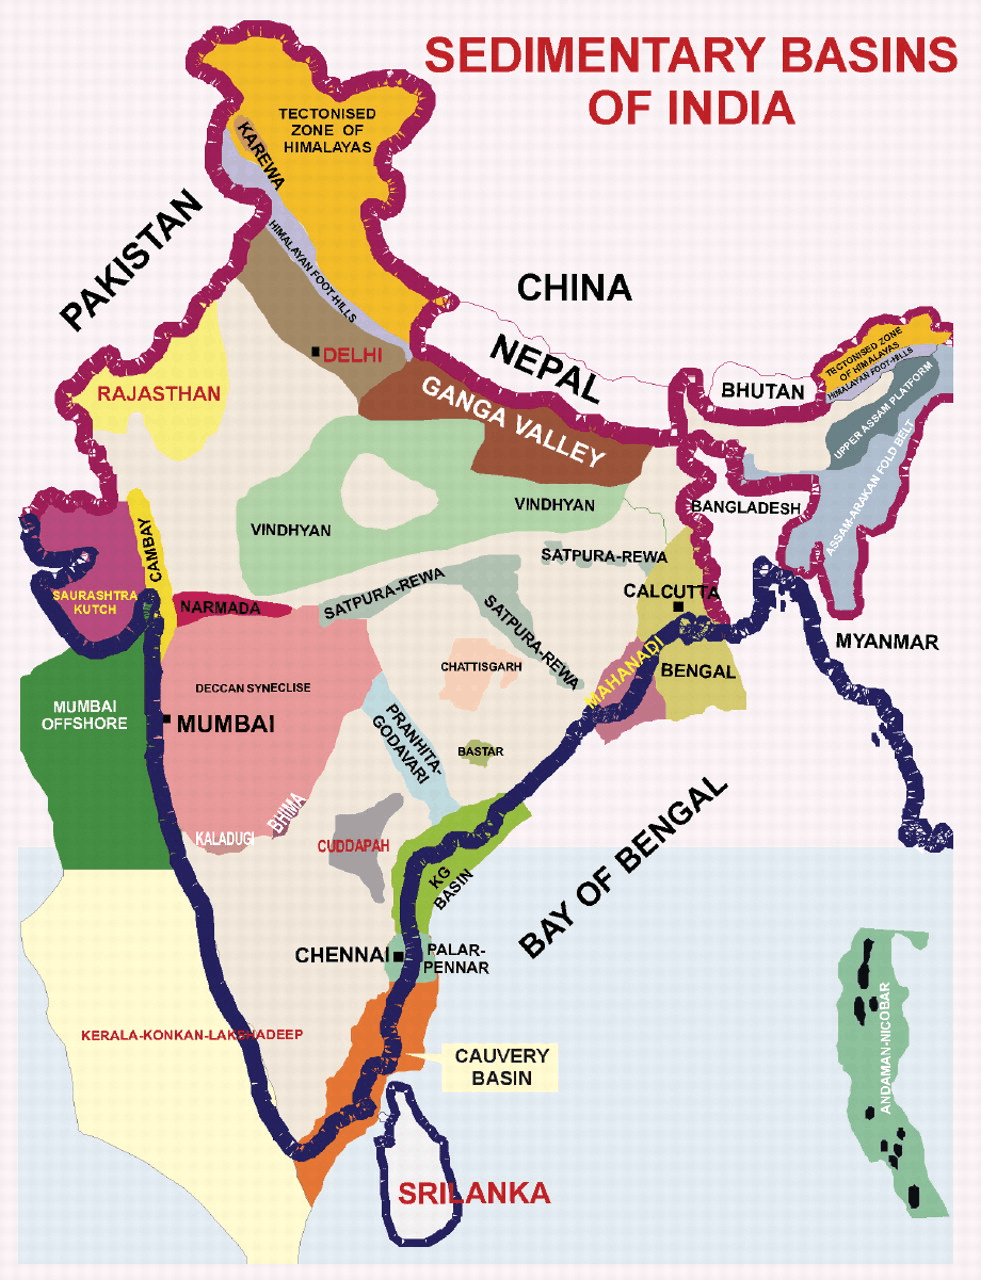 Map of Sedimentary Basins of India